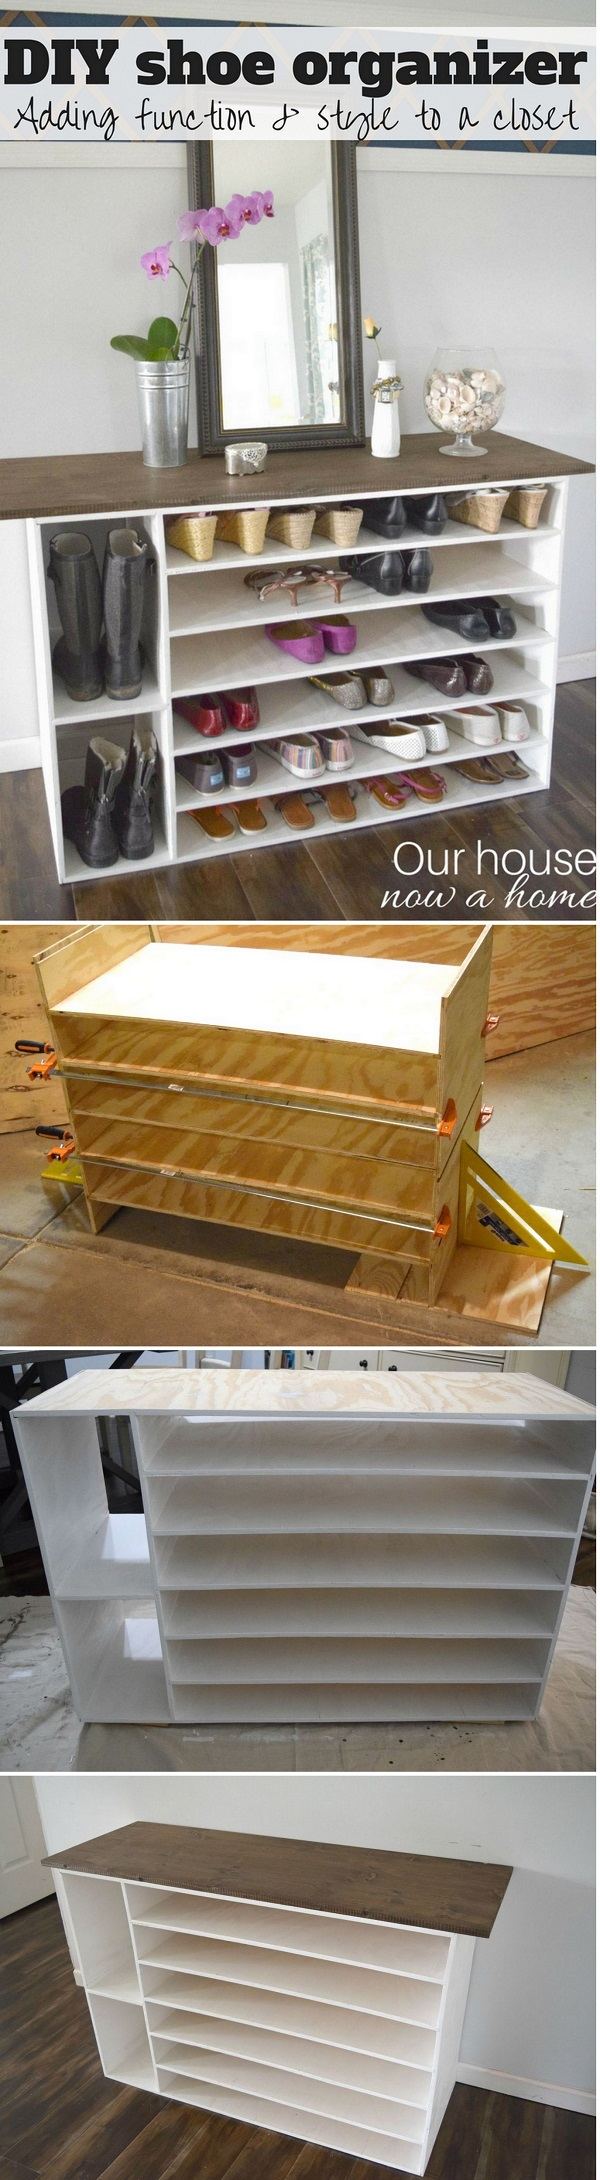 60+ Easy DIY Shoe Rack Ideas You Can Build on a Budget - Check out how to build your own DIY shoe storage organizer